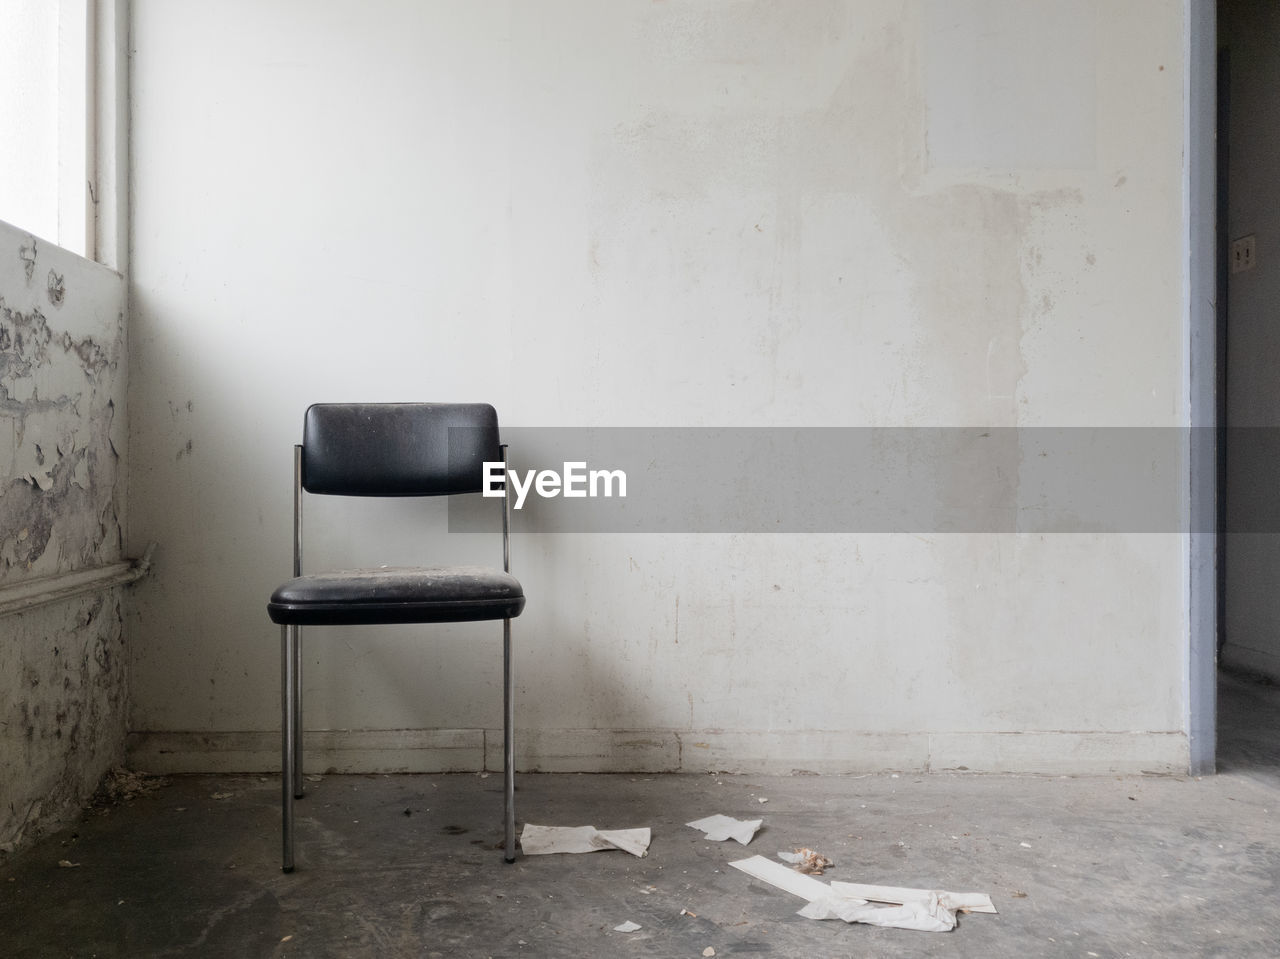 EMPTY CHAIR AGAINST WALL IN ABANDONED ROOM